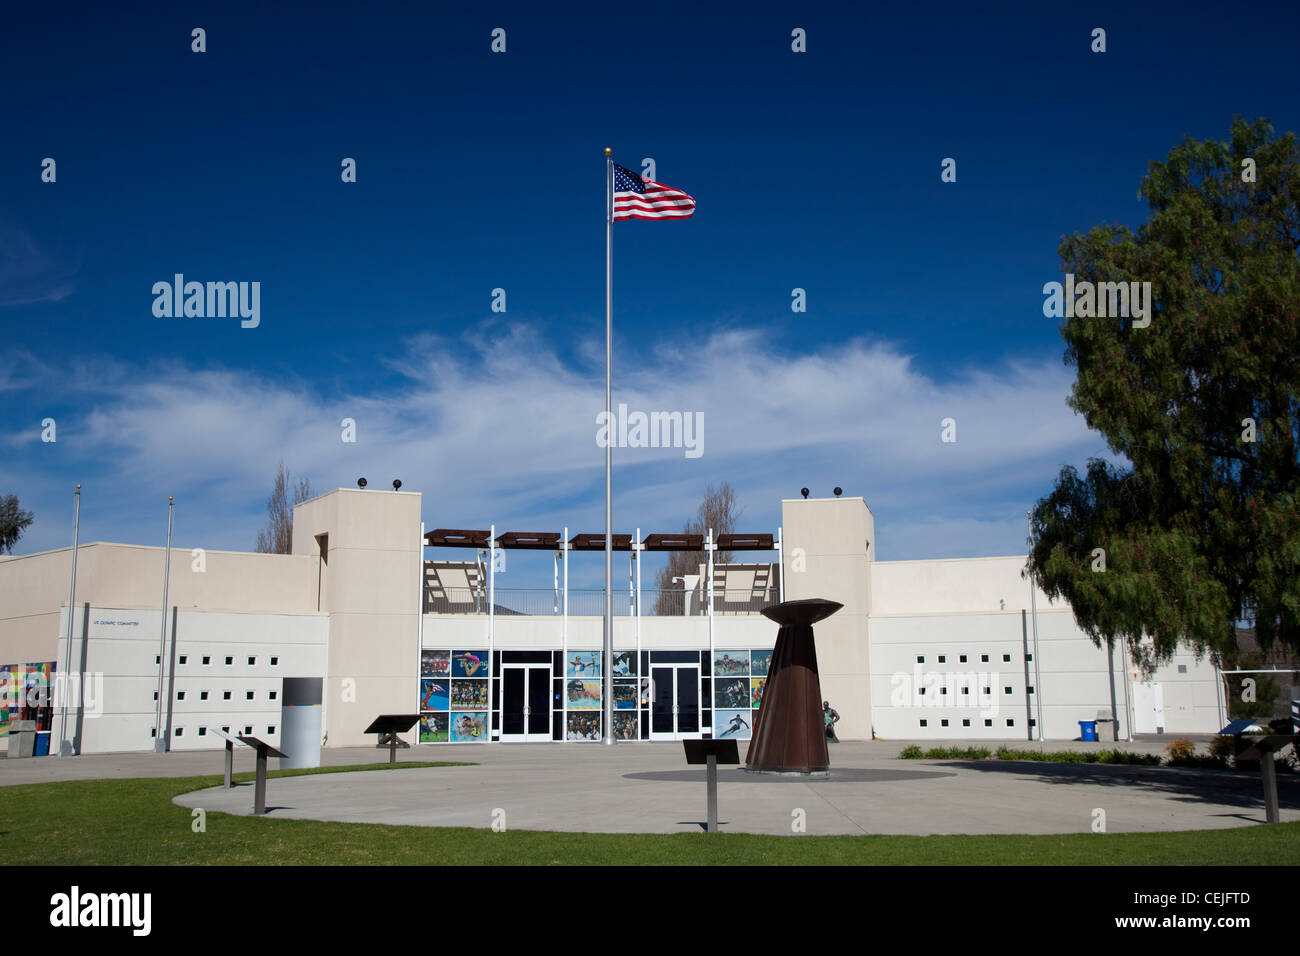 Chula Vista, California - The visitor center at the U.S. Olympic Training Center. - Stock Image